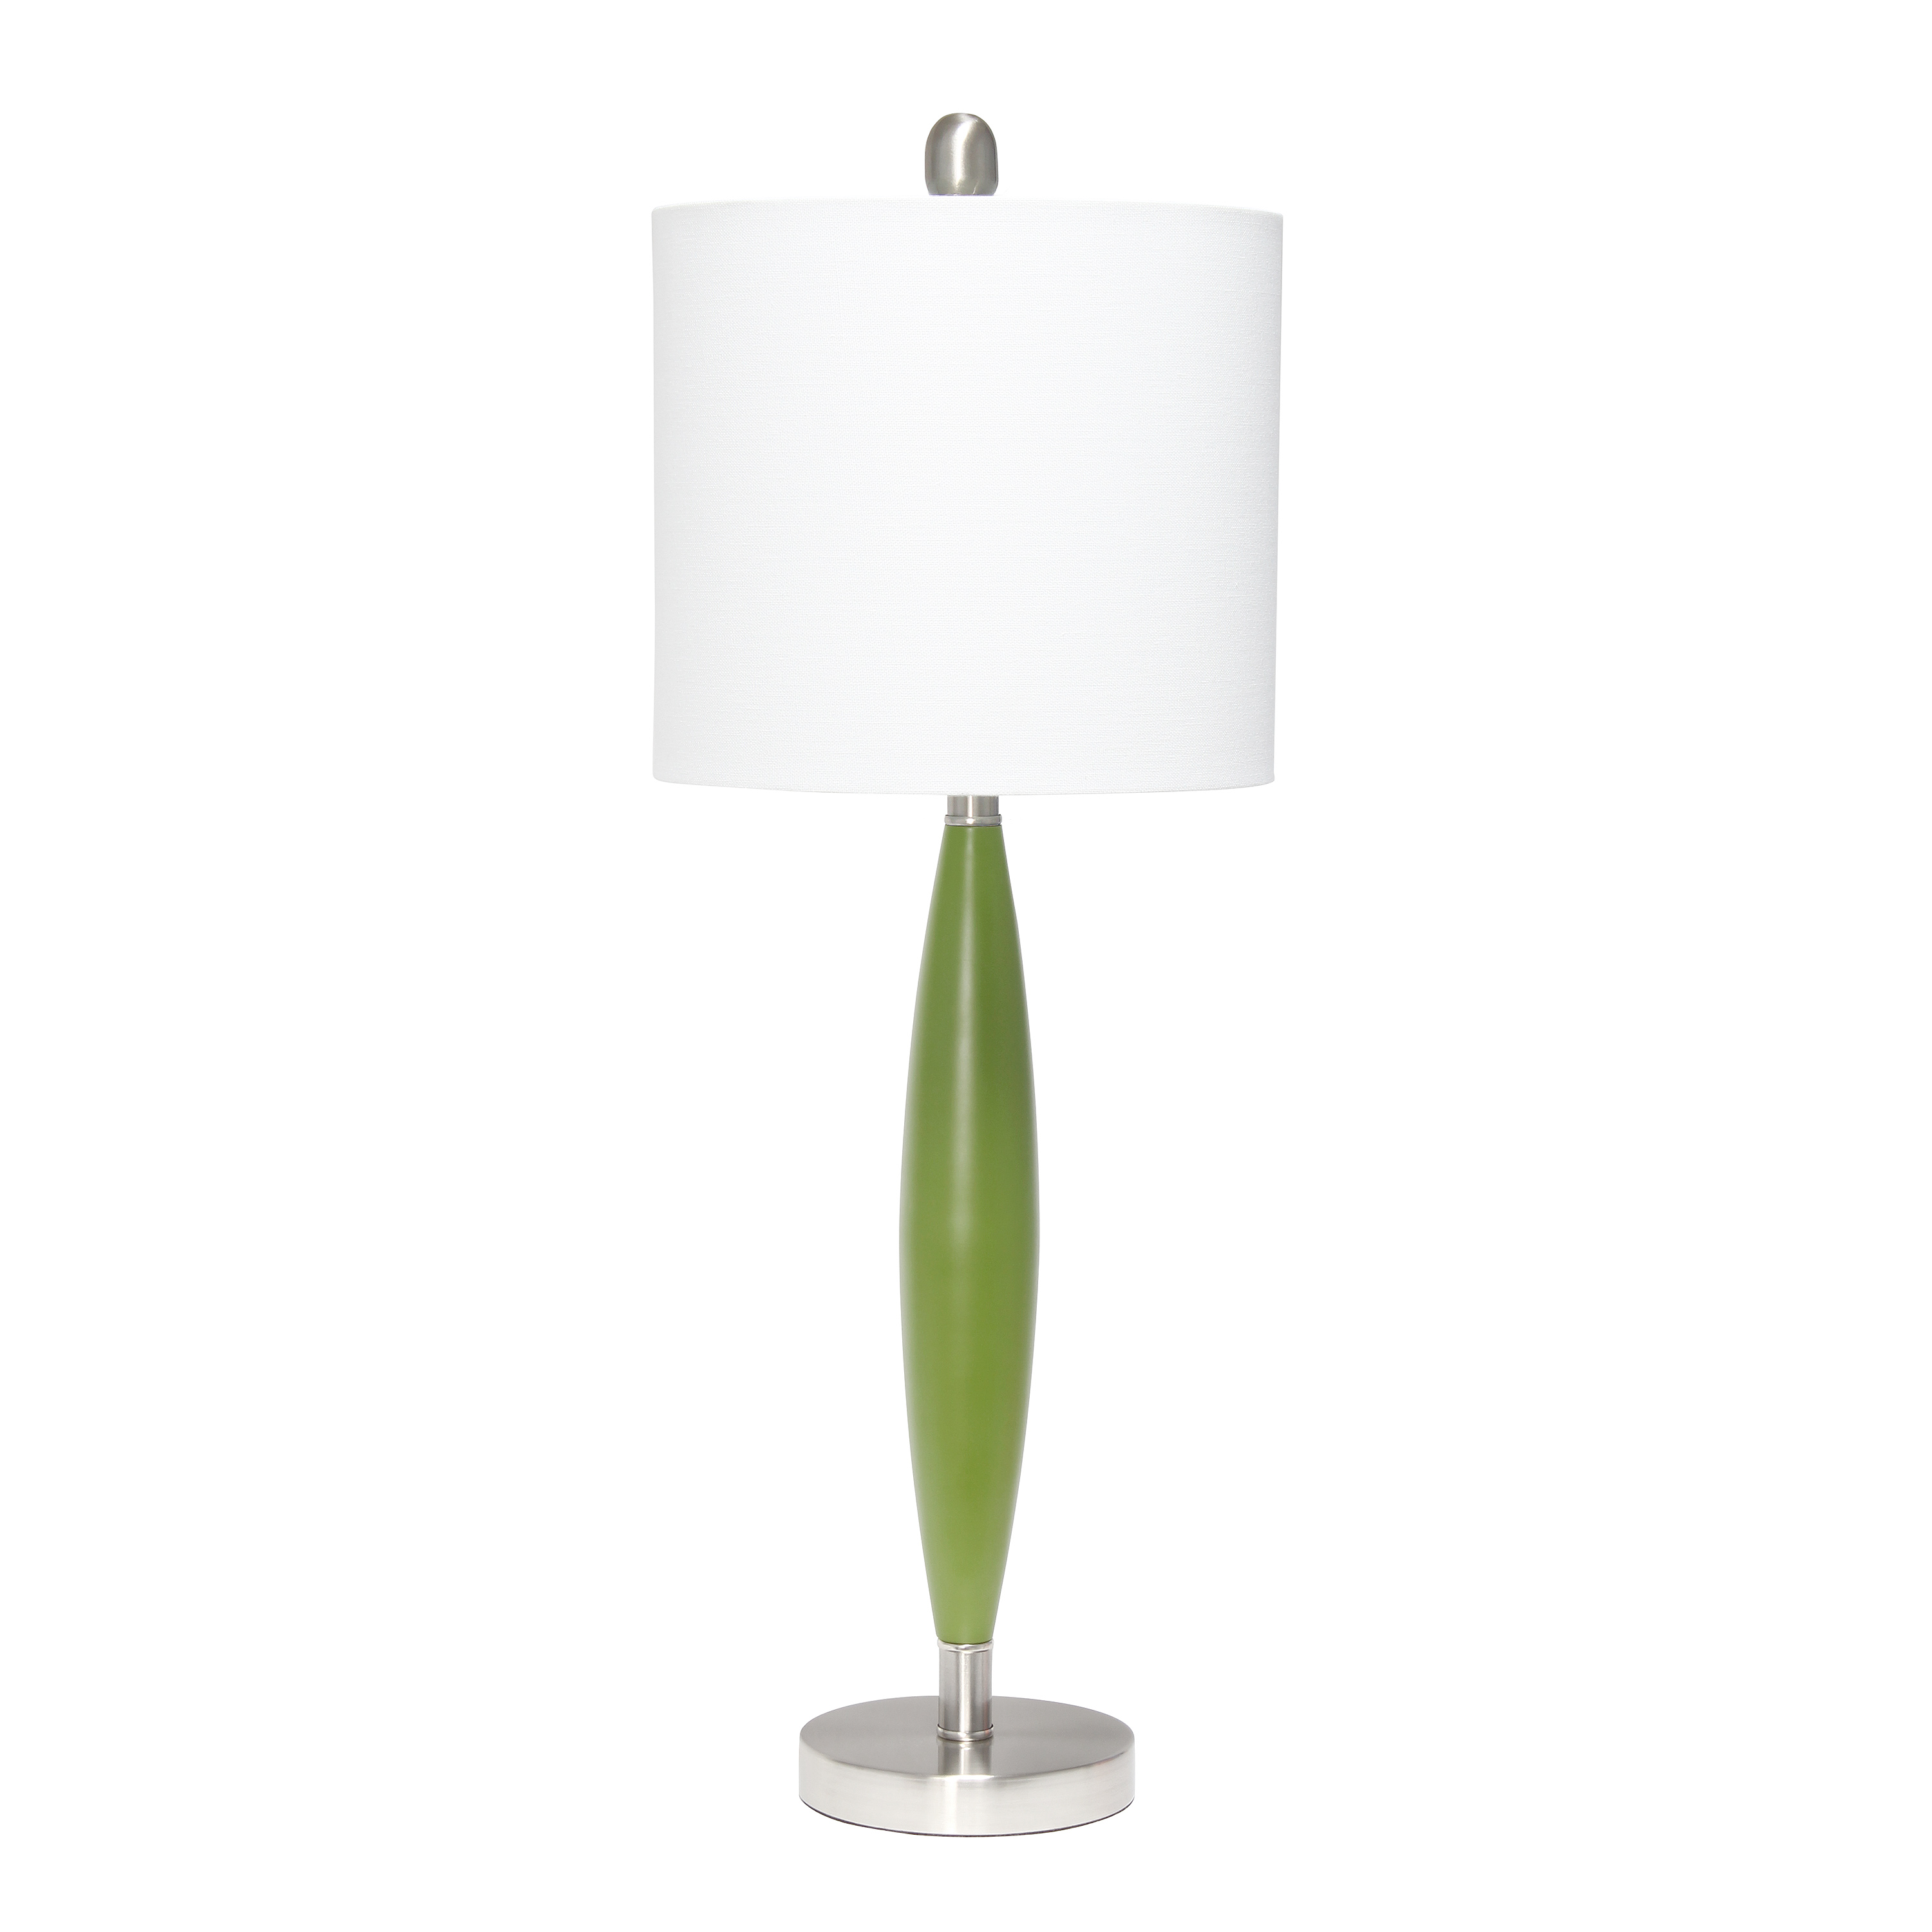 Lalia Home Stylus Table Lamp with White Fabric Shade, Green